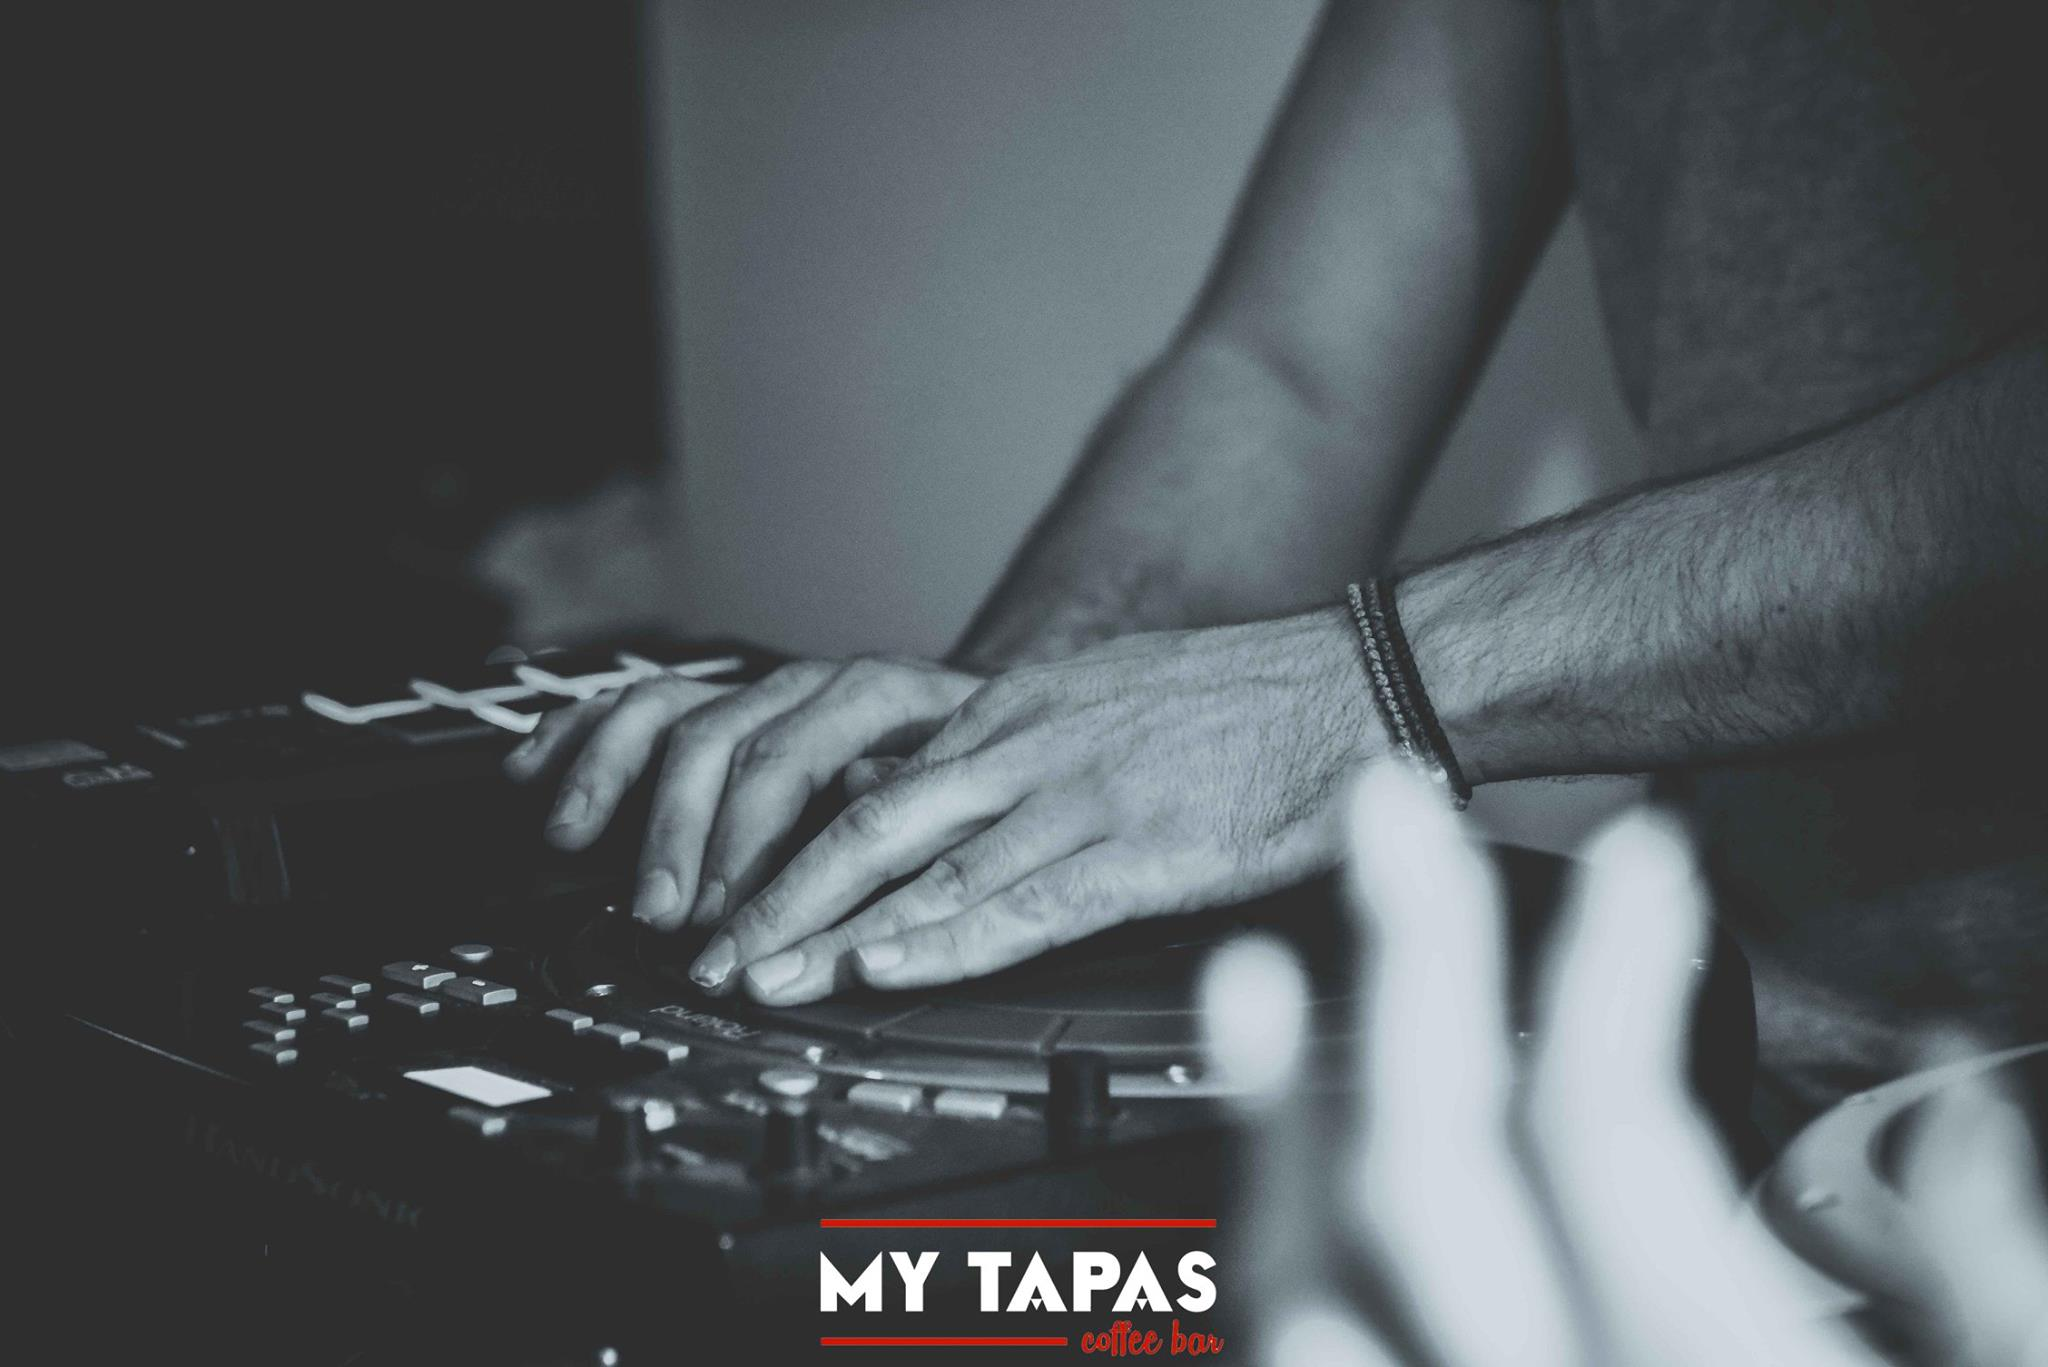 3. 22548590 1576366255716915 3766120837504666746 o - My Live Tuesdays στο MY Tapas Coffee bar | Τρίτη 17.10 Part 1/2